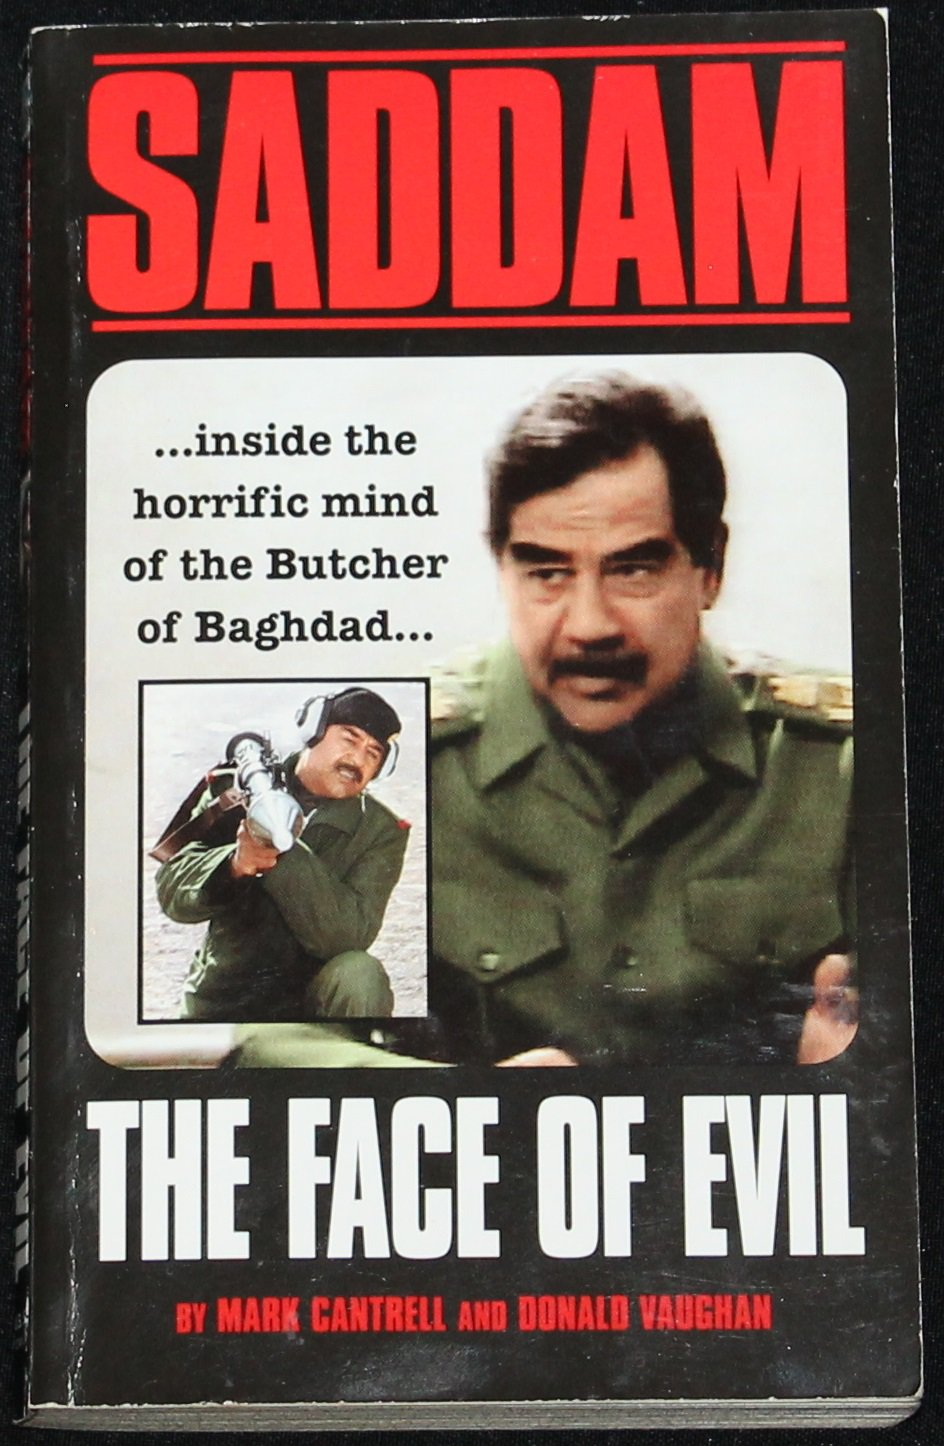 Saddam The Face of Evil - true crime crimes Iraq humanity dictator paperback book